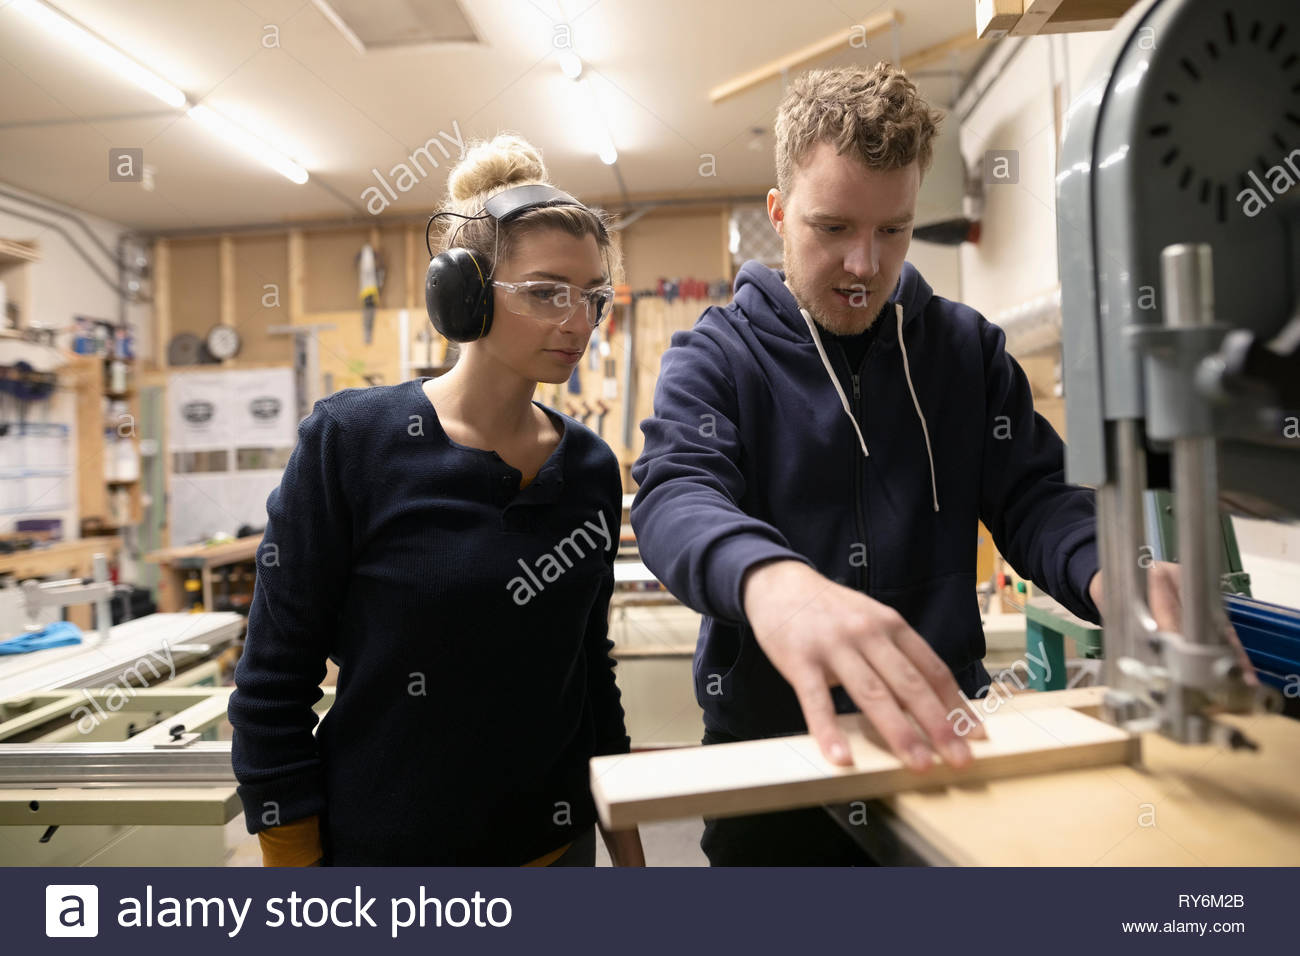 Woodworkers using saw in woodworking shop - Stock Image